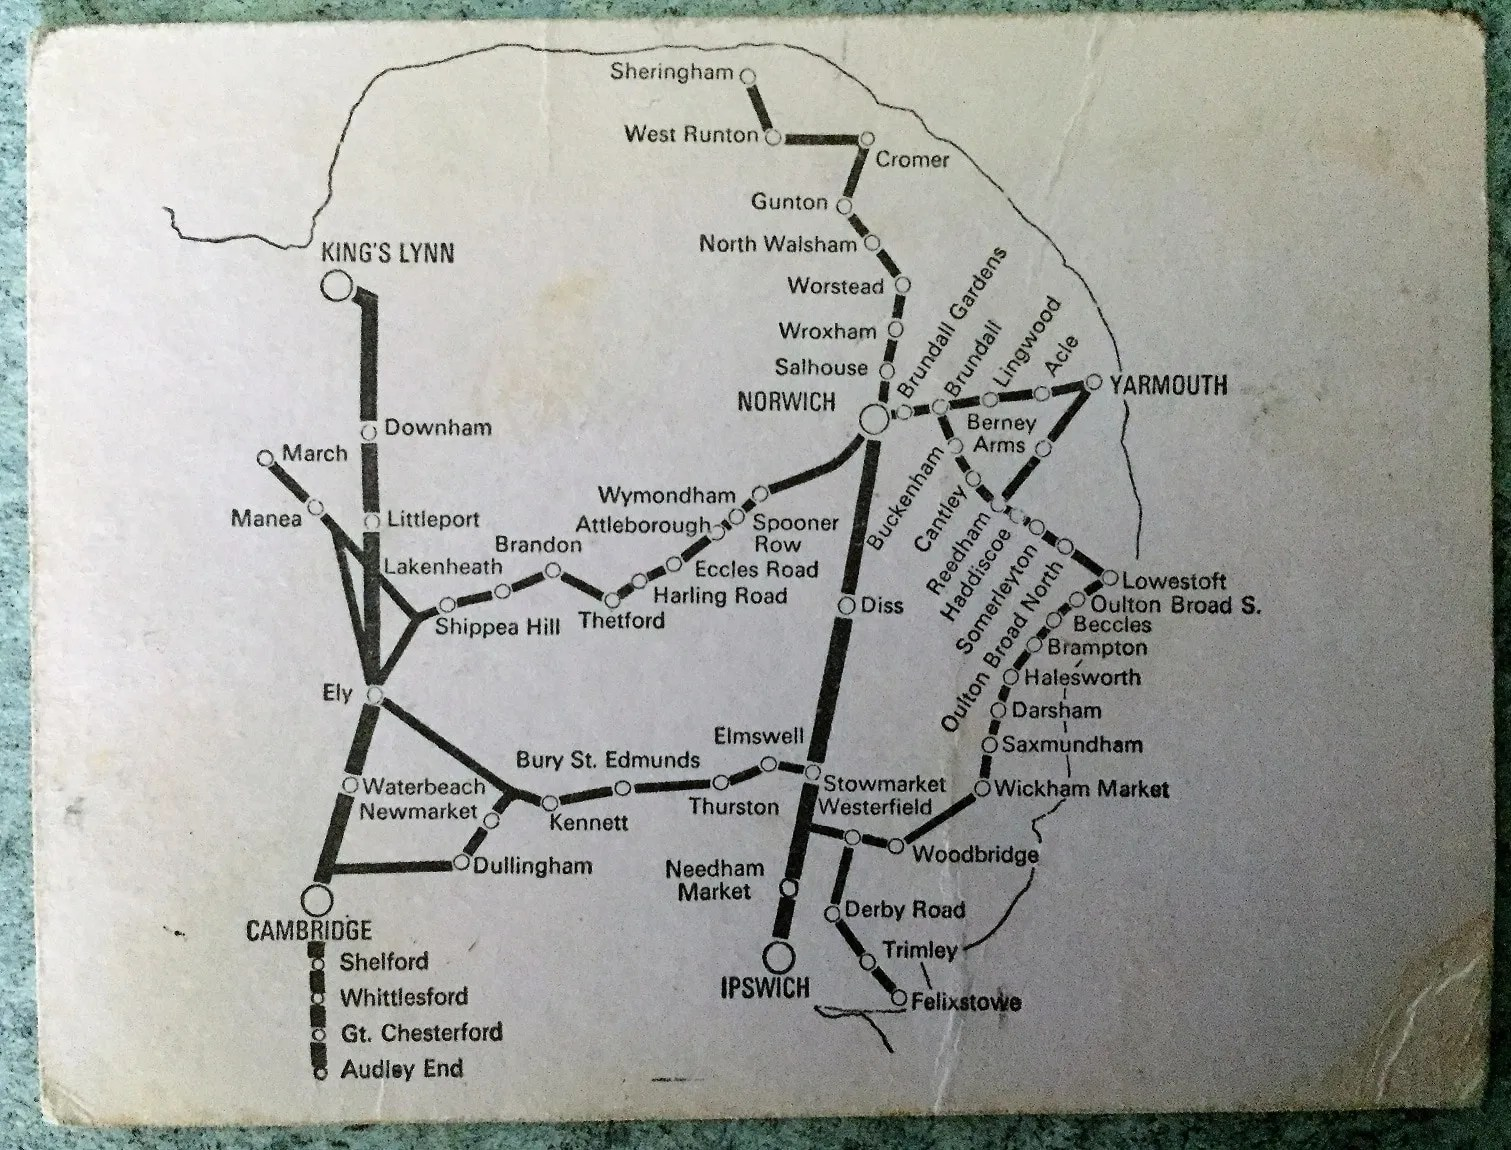 Anglian Ranger ticket showing British Rail Eastern Region map